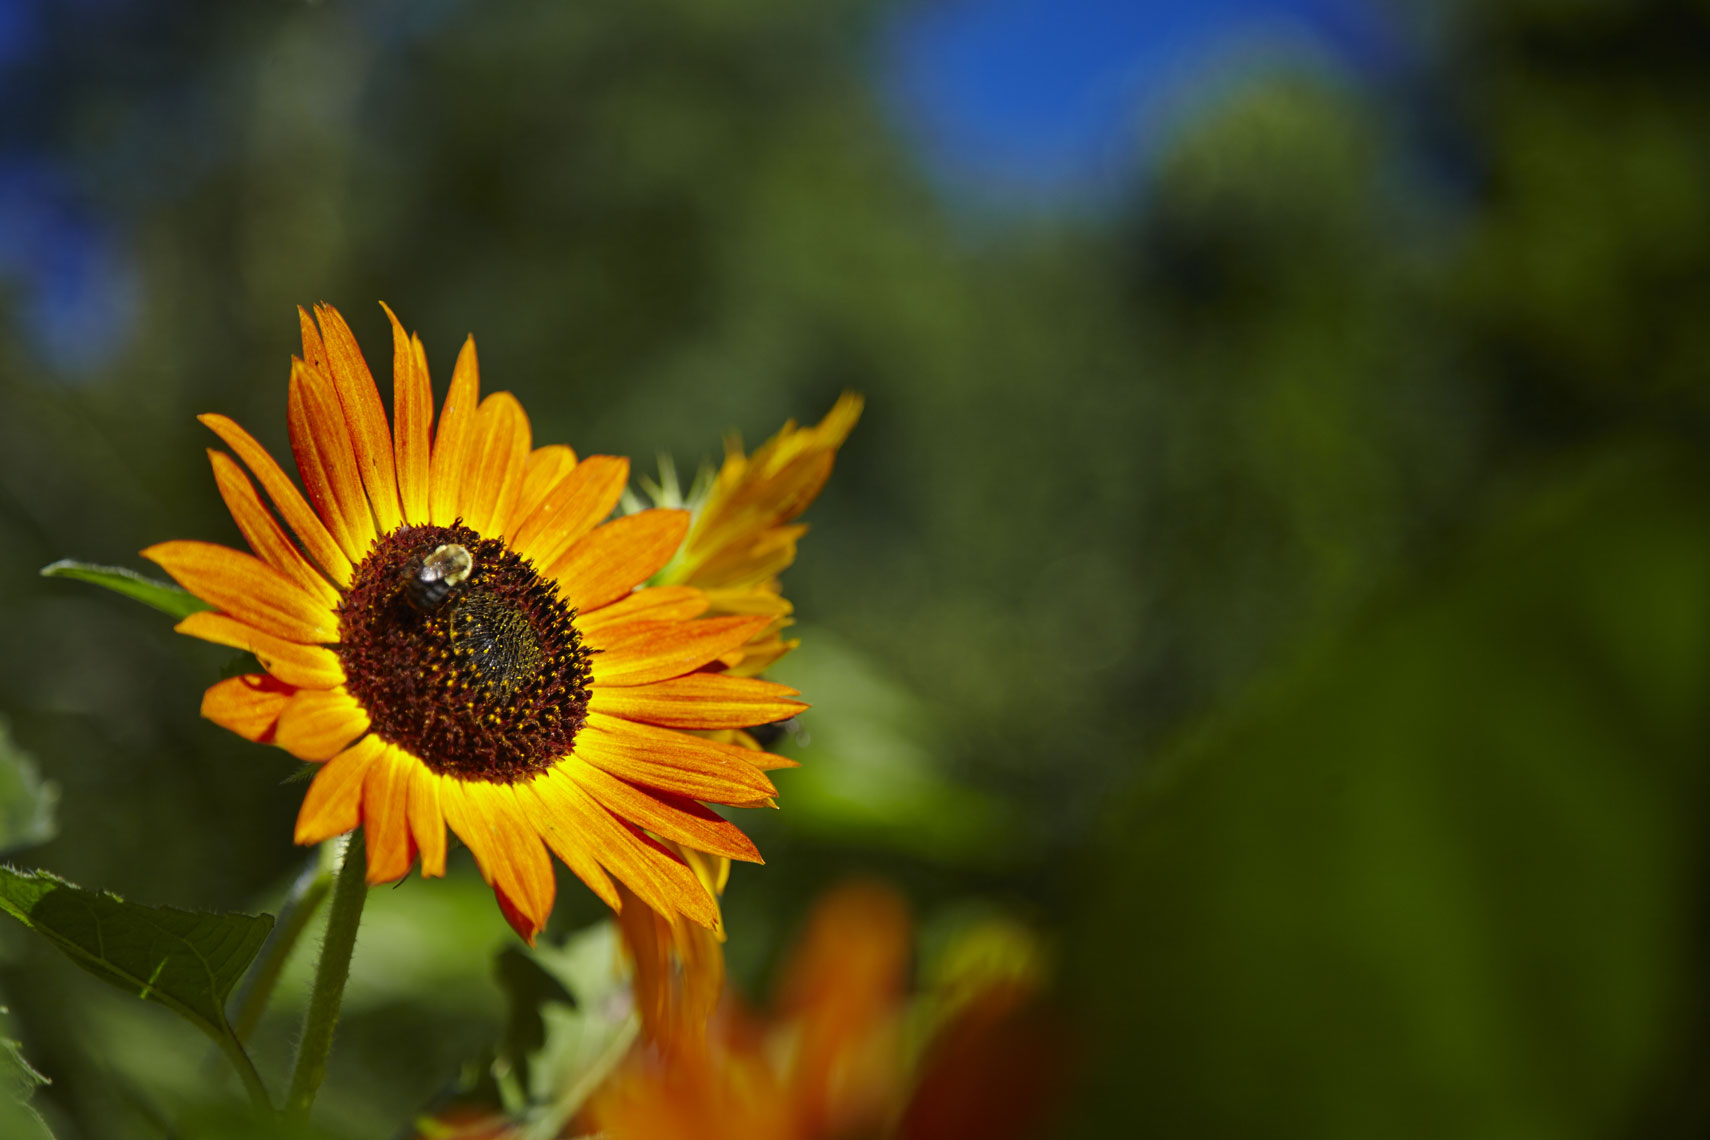 001_sunflowers_026